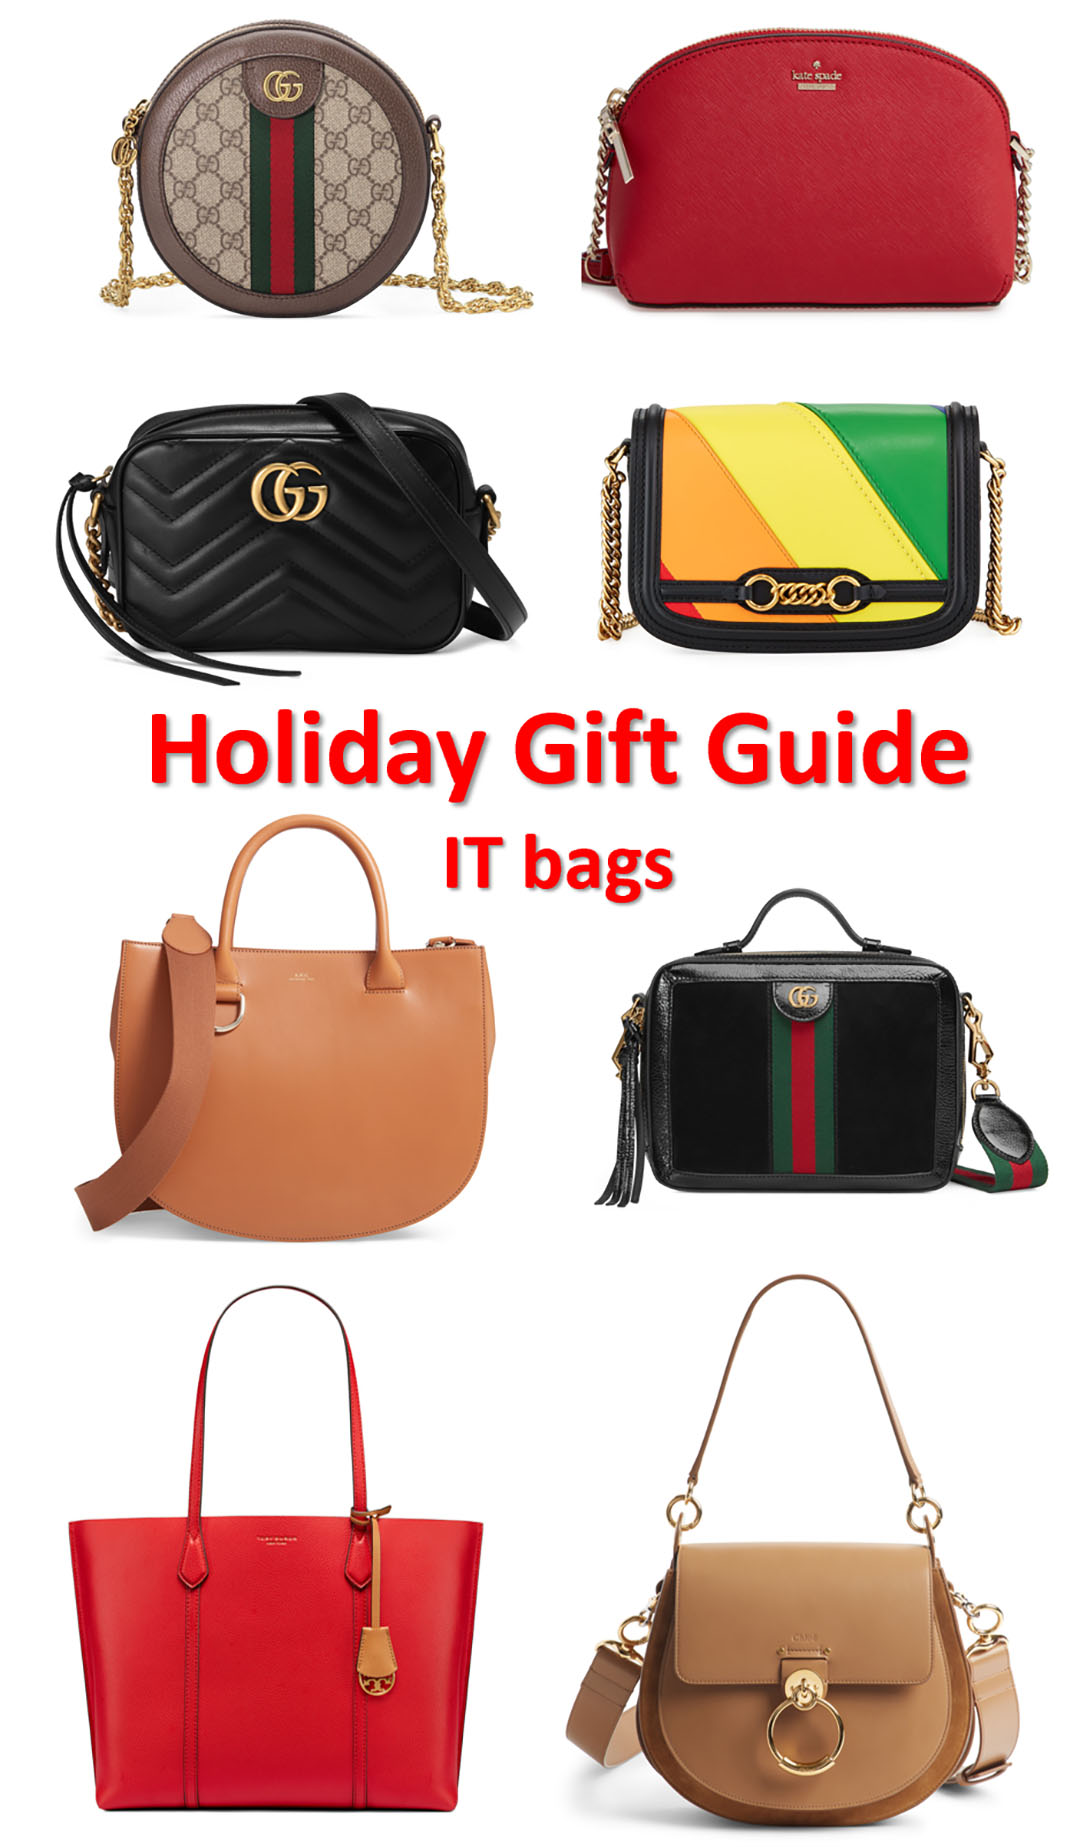 holiday gift guide handbag it bag gift ideas 2018